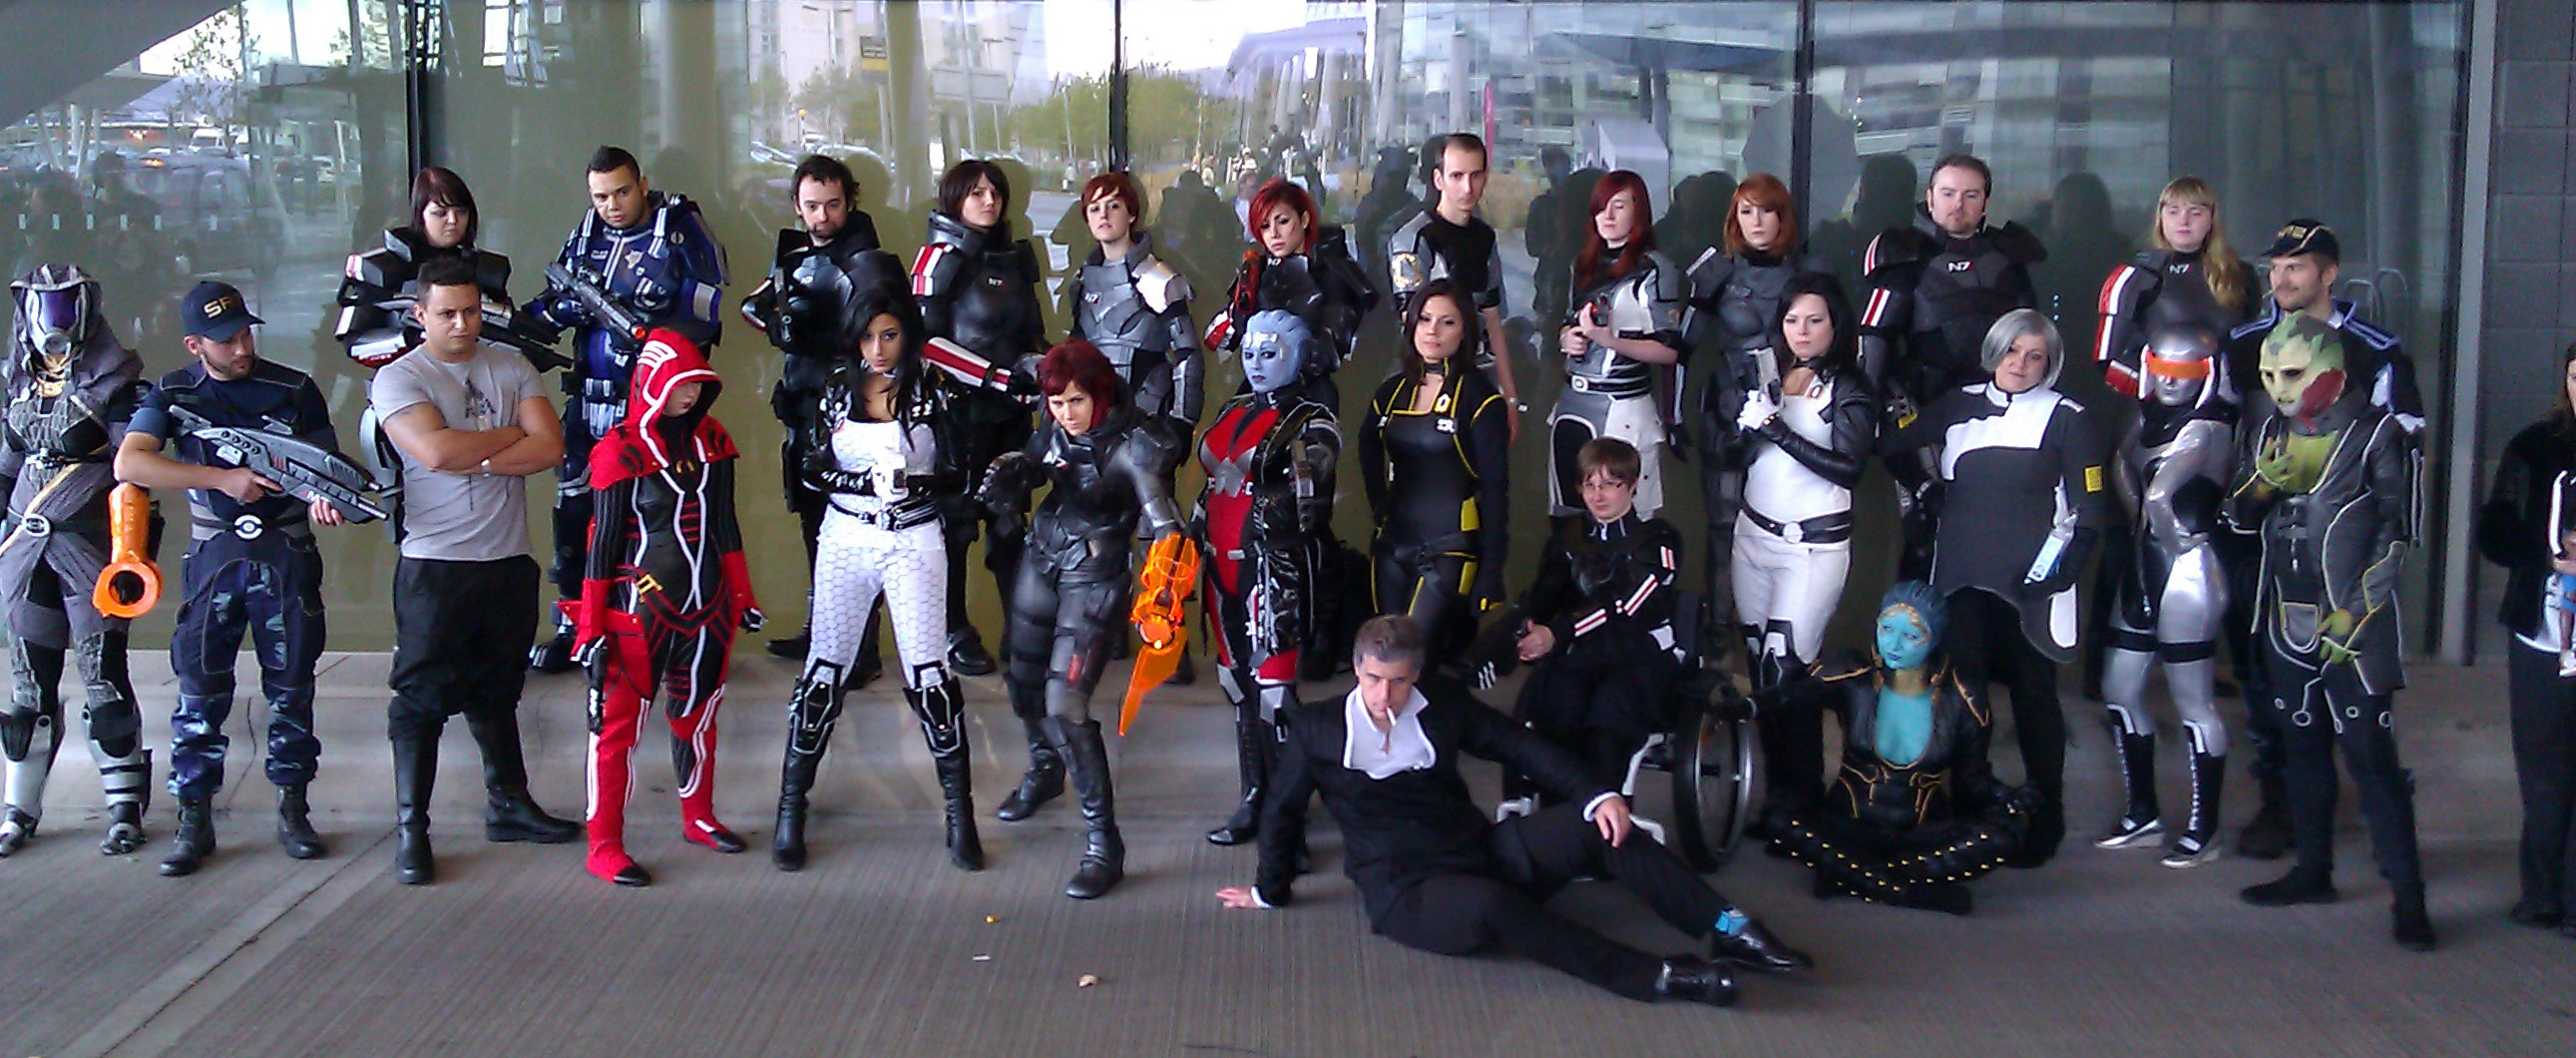 MCM BioWare cosplayers 2012